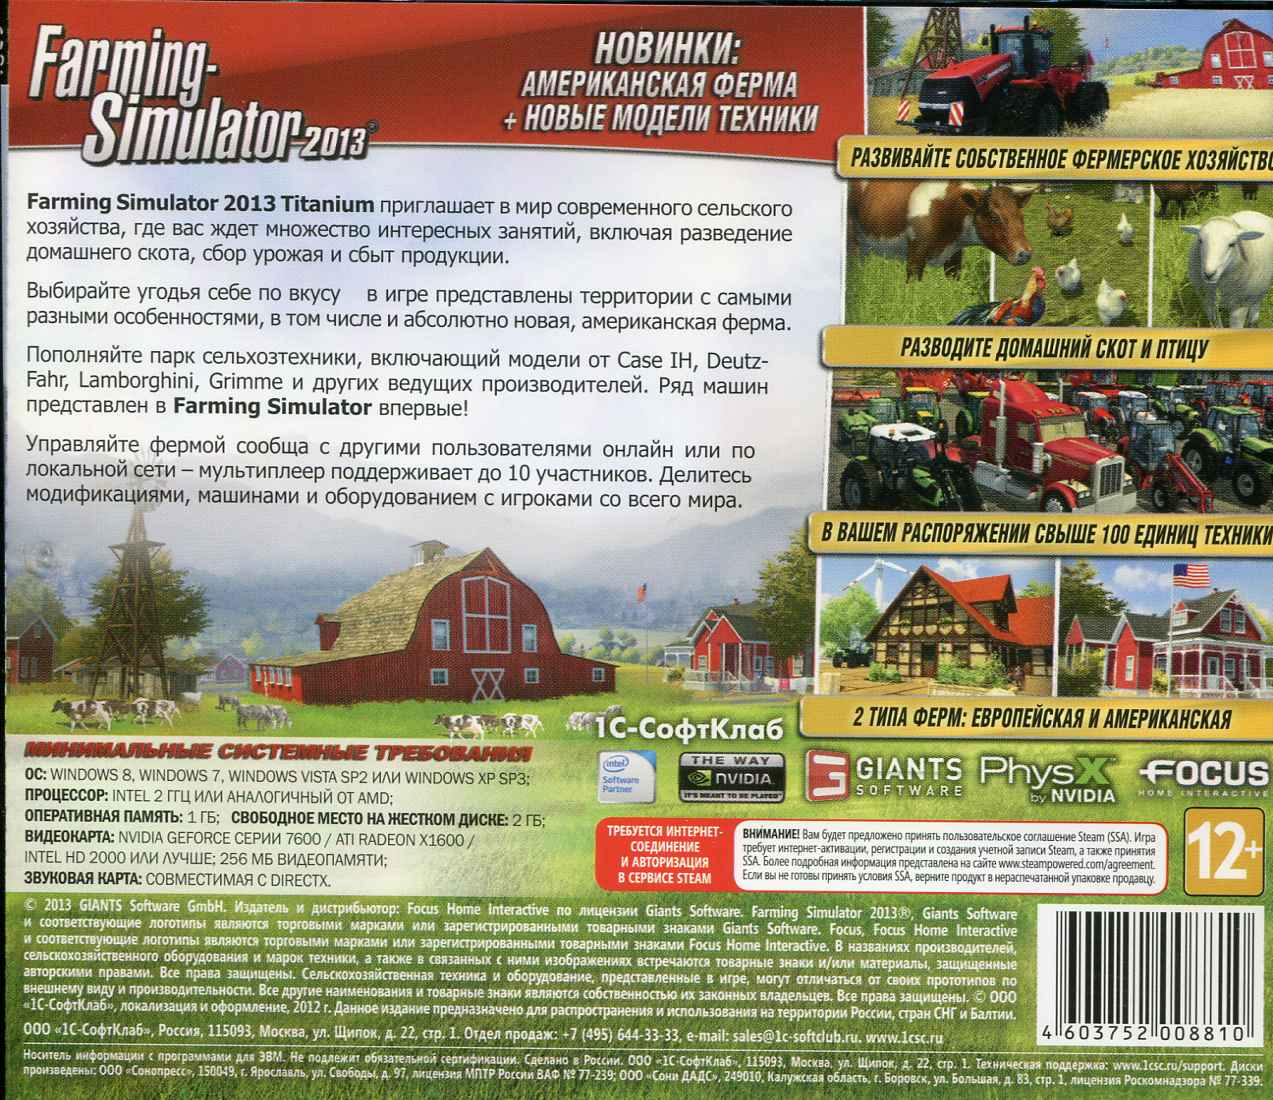 Farming Simulator 2013 Titanium Edition (Steam)